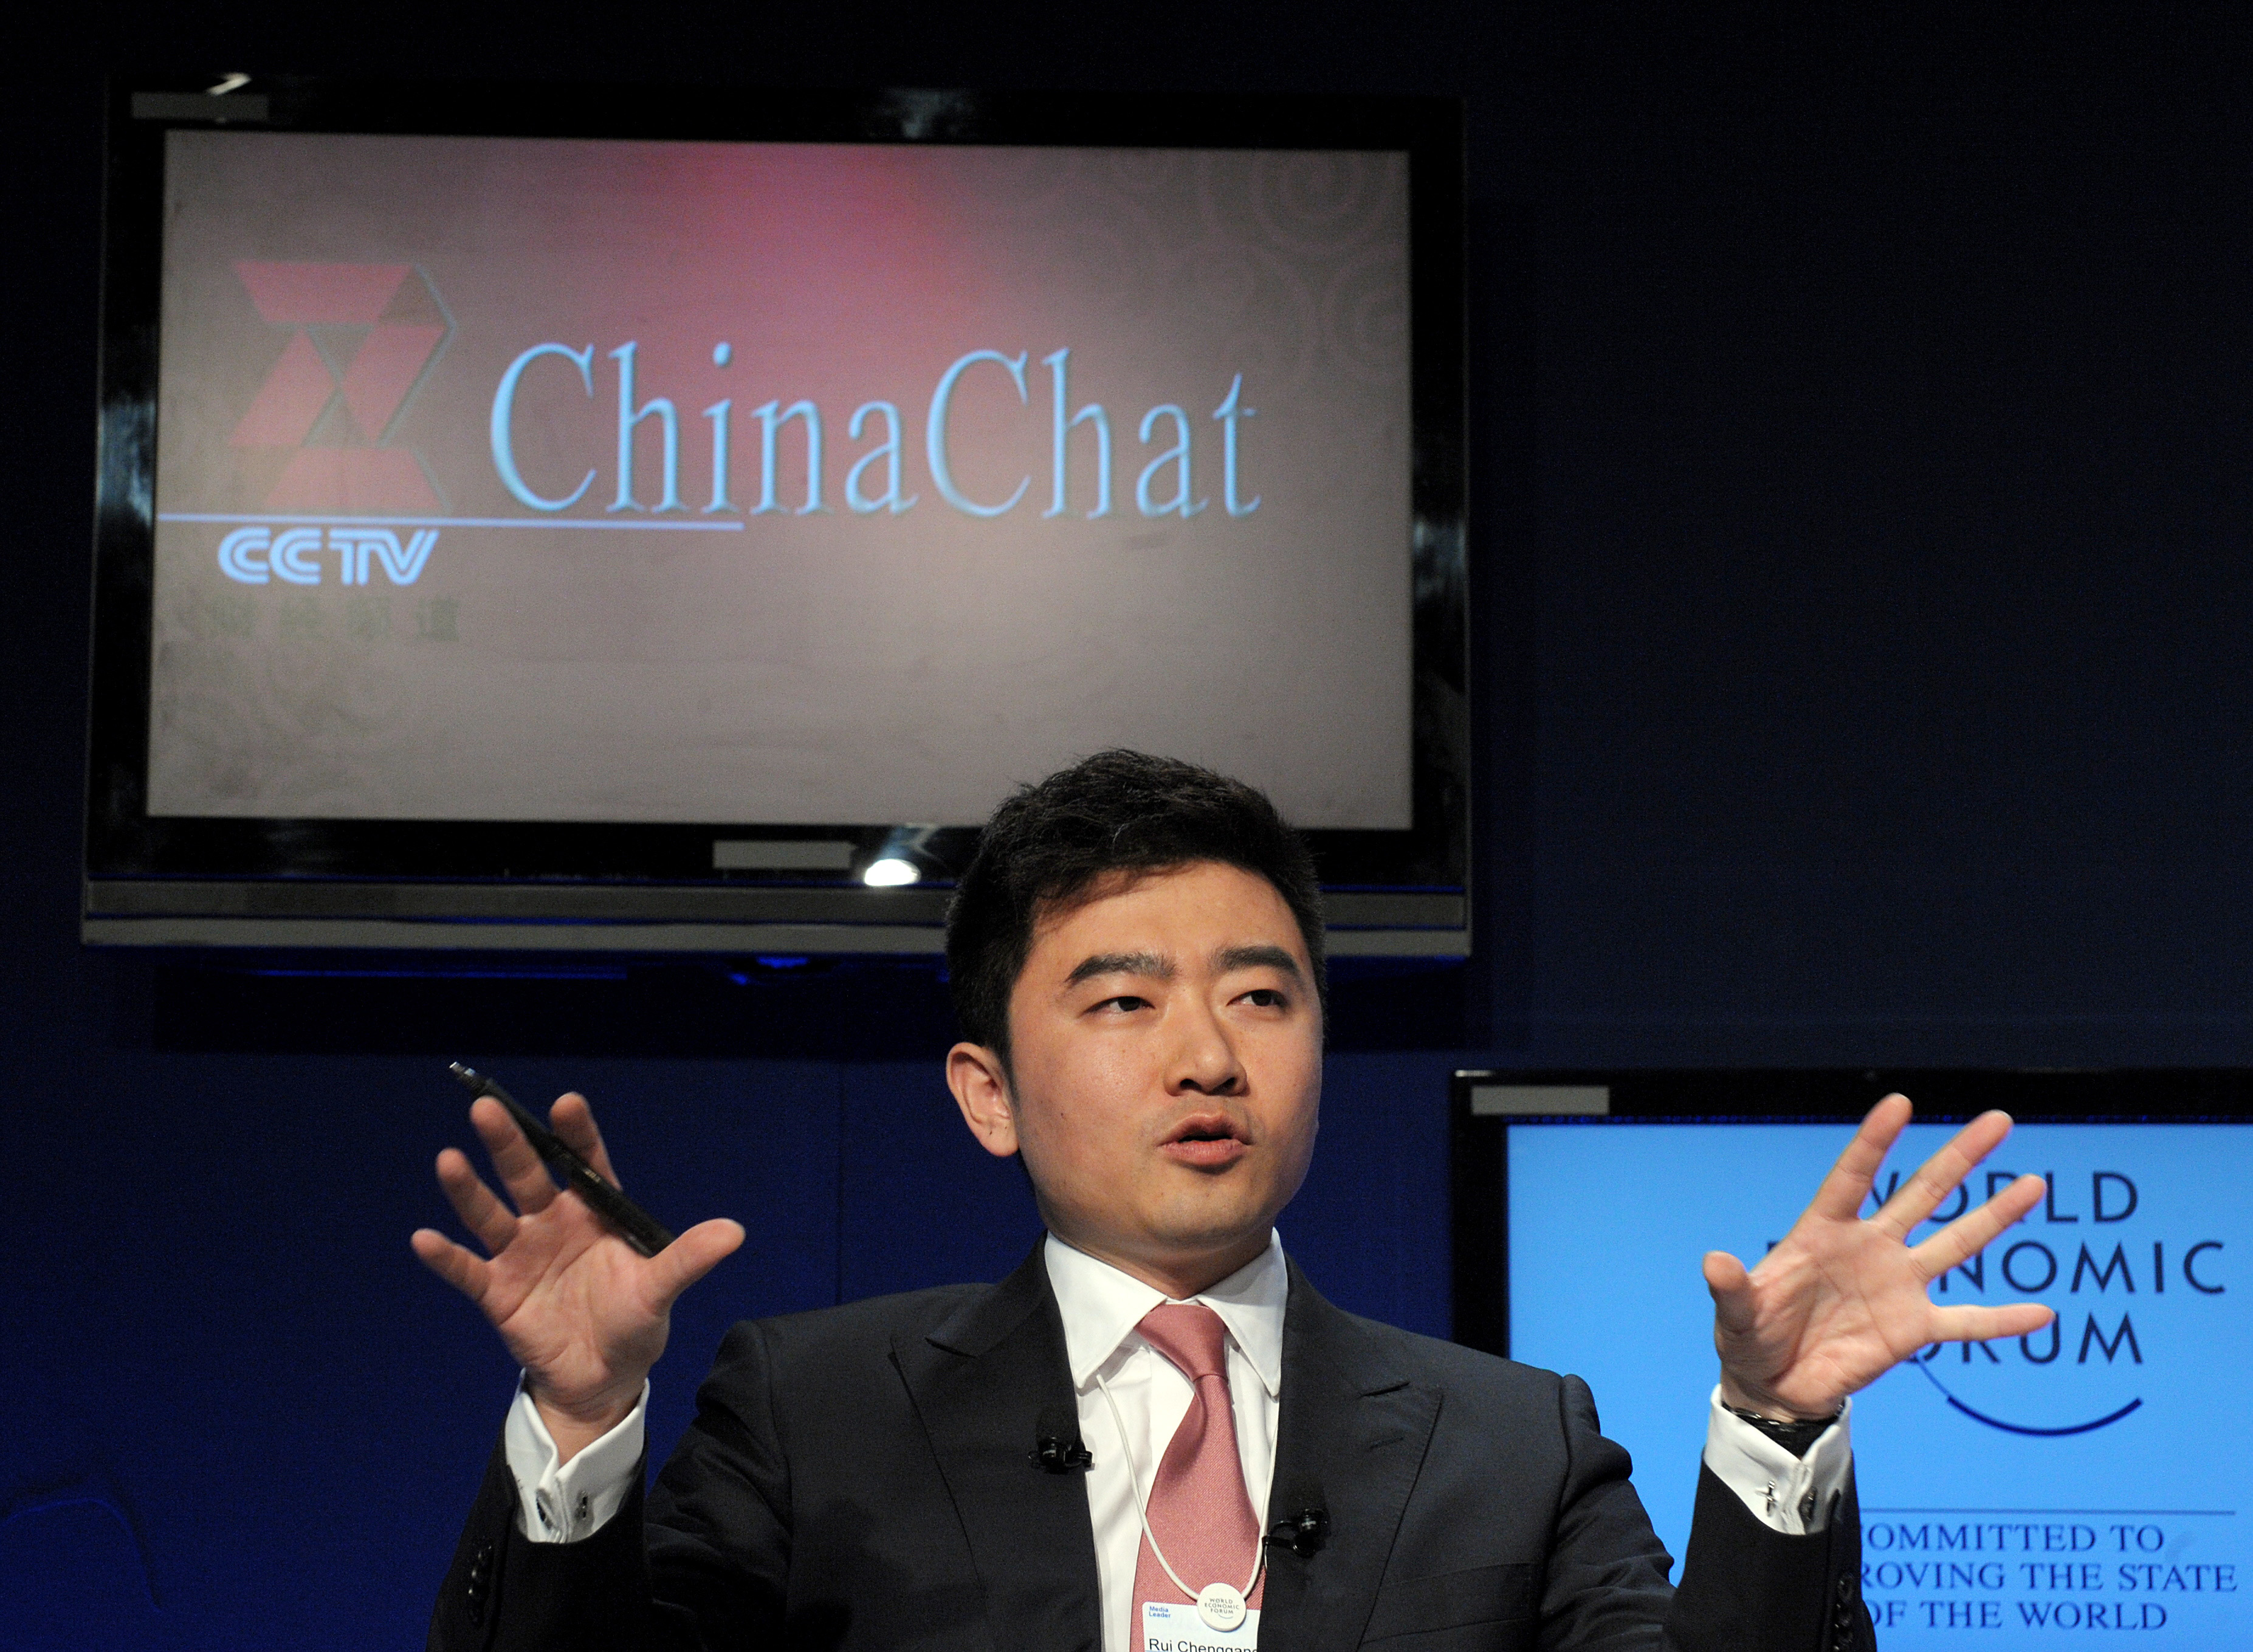 Director and anchor of China Central Tel